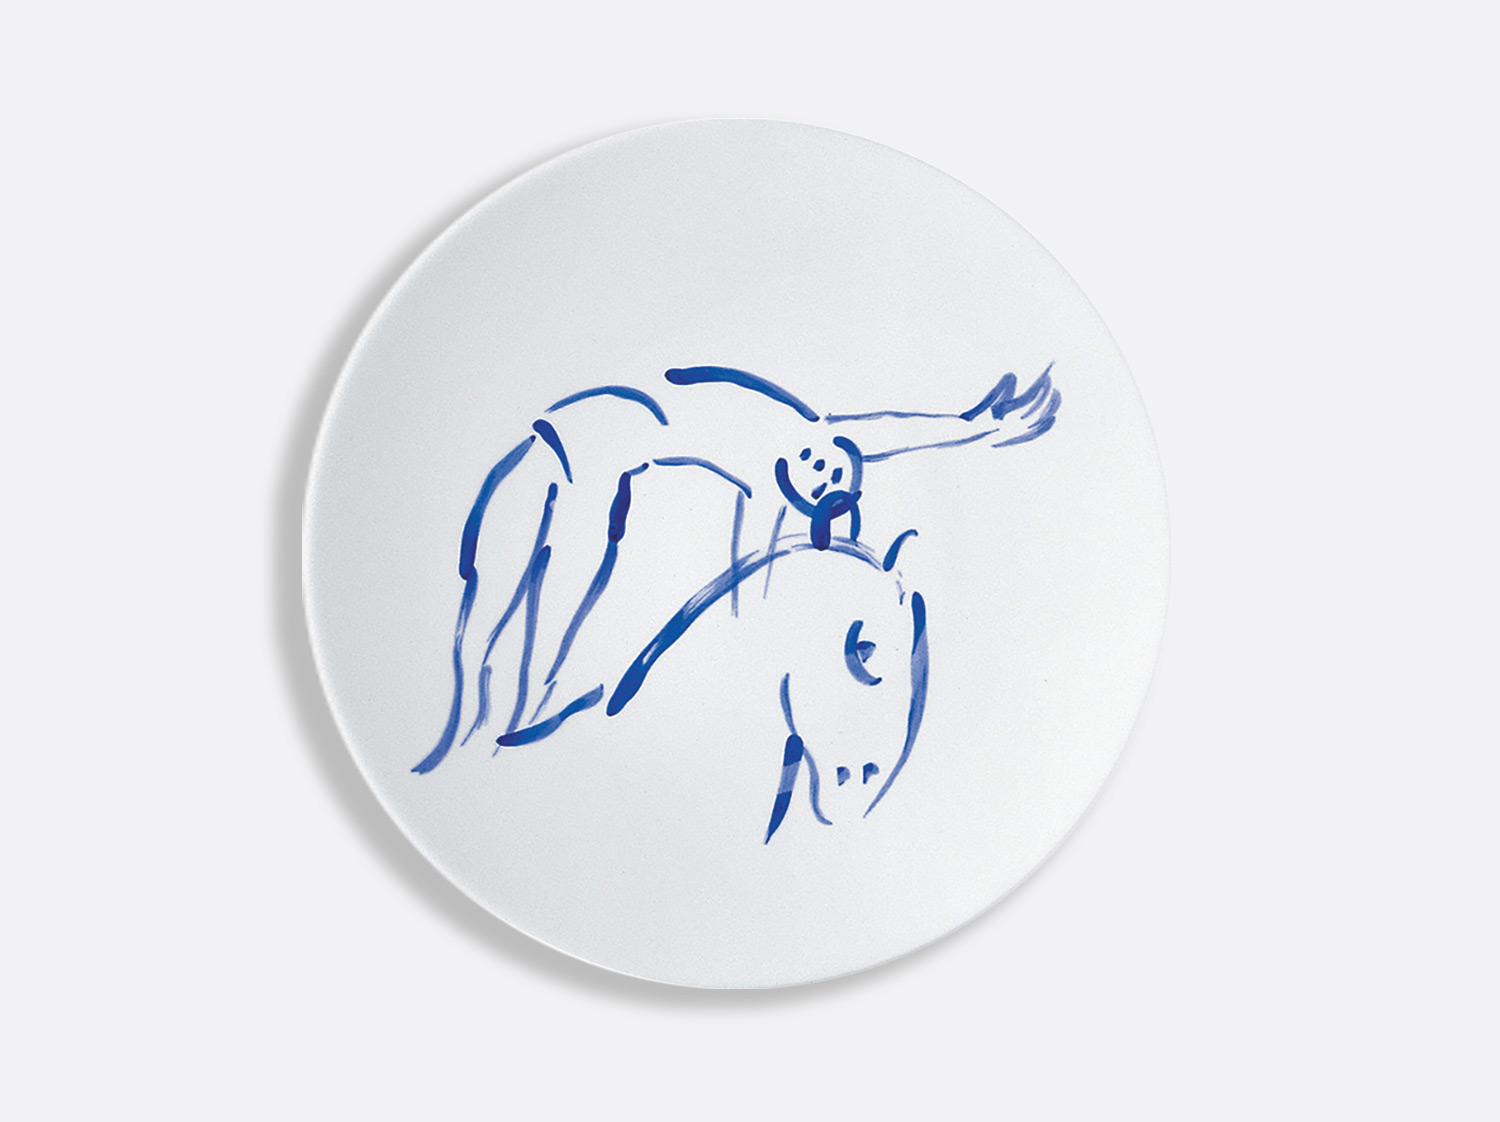 Assiette à diner l'ecuyere 26 cm en porcelaine de la collection Pour ida Bernardaud